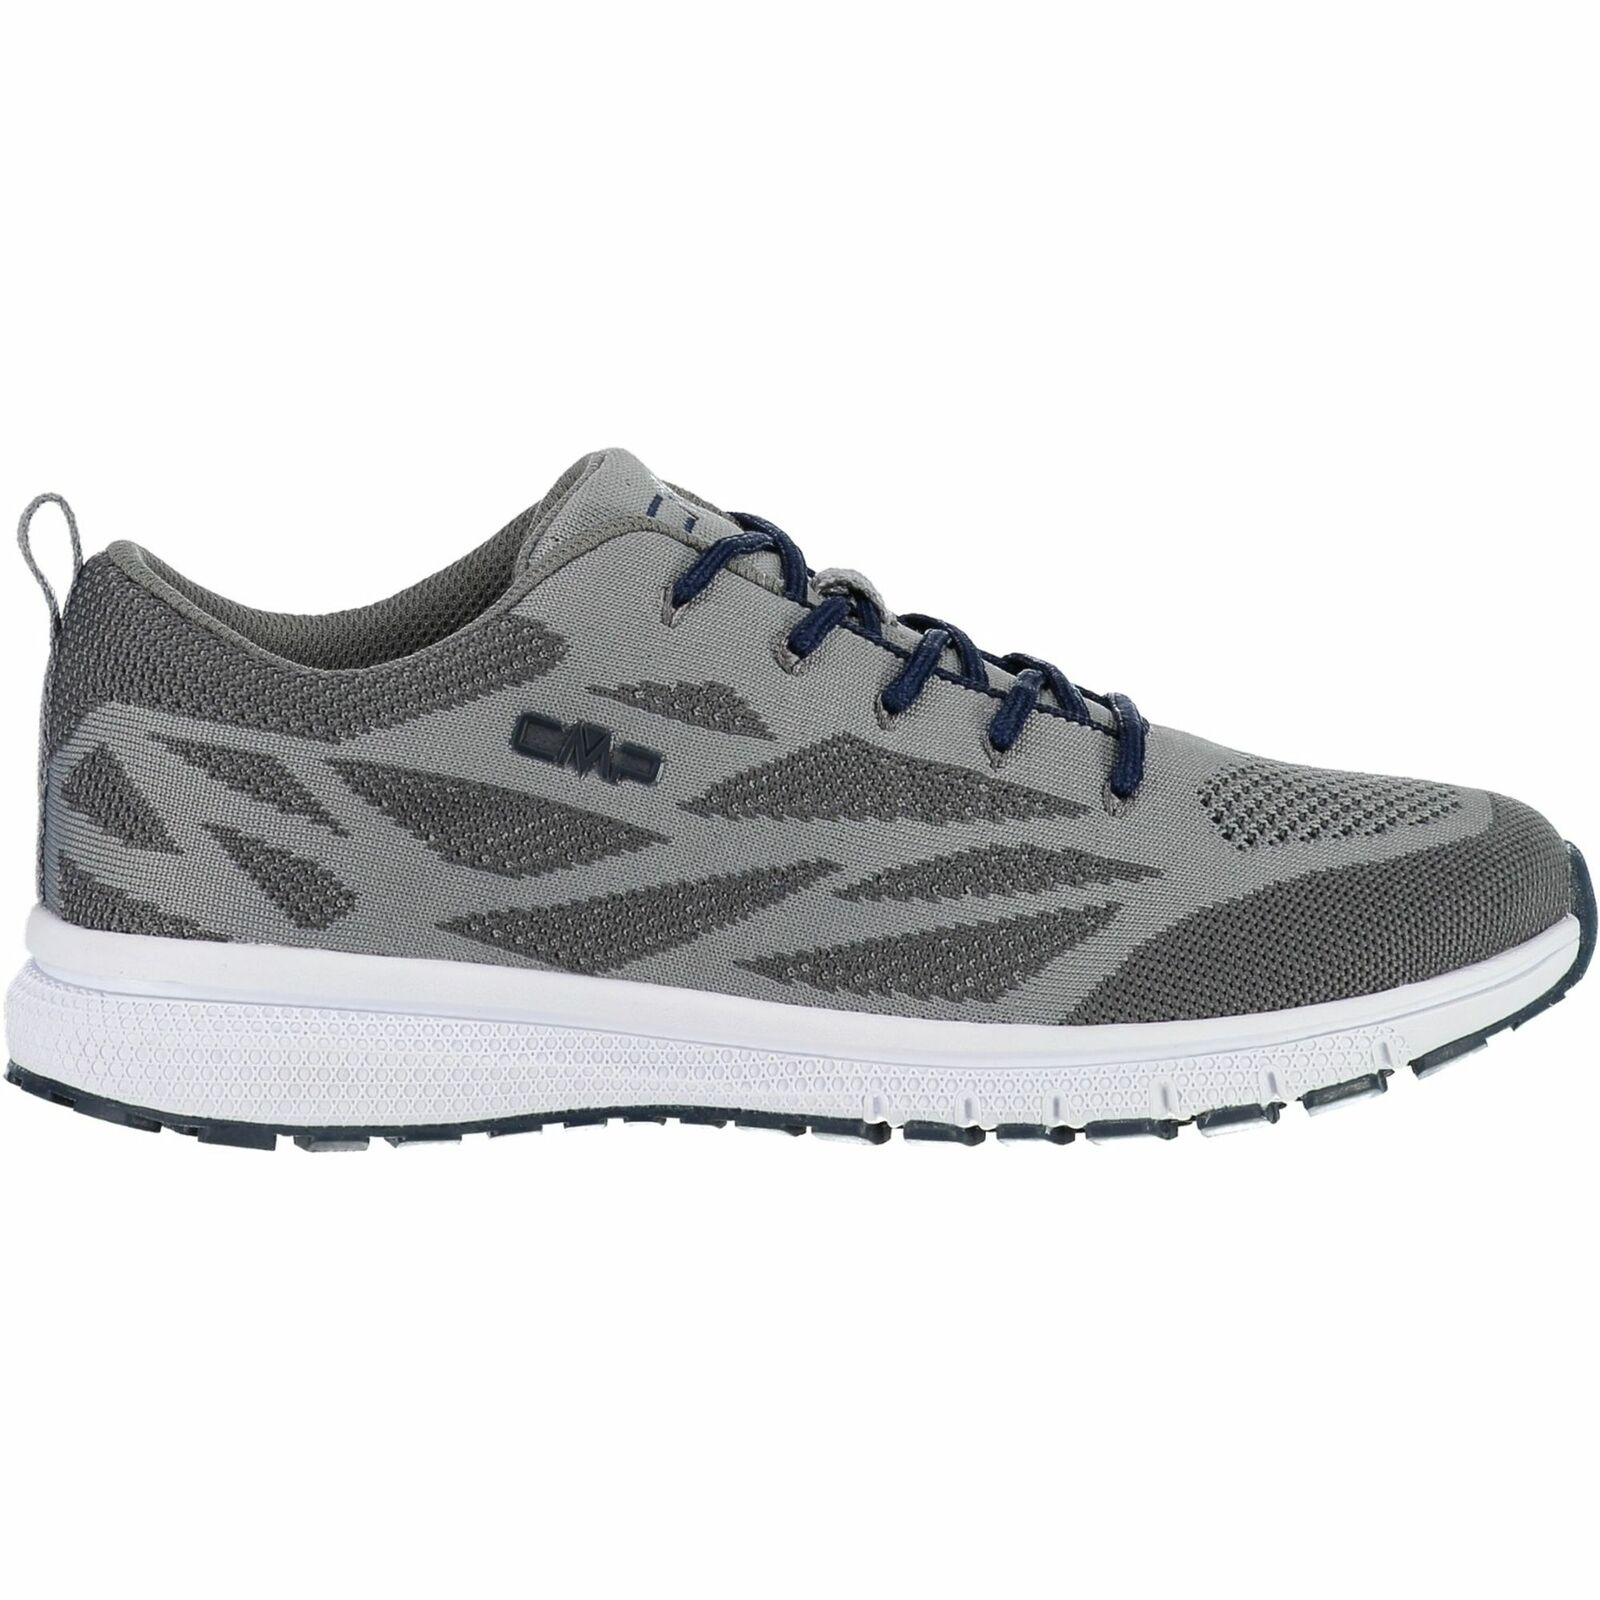 CMP Trainers Sports Chamaeleontis Foam 2.0 Fitness  shoes Grey  100% free shipping